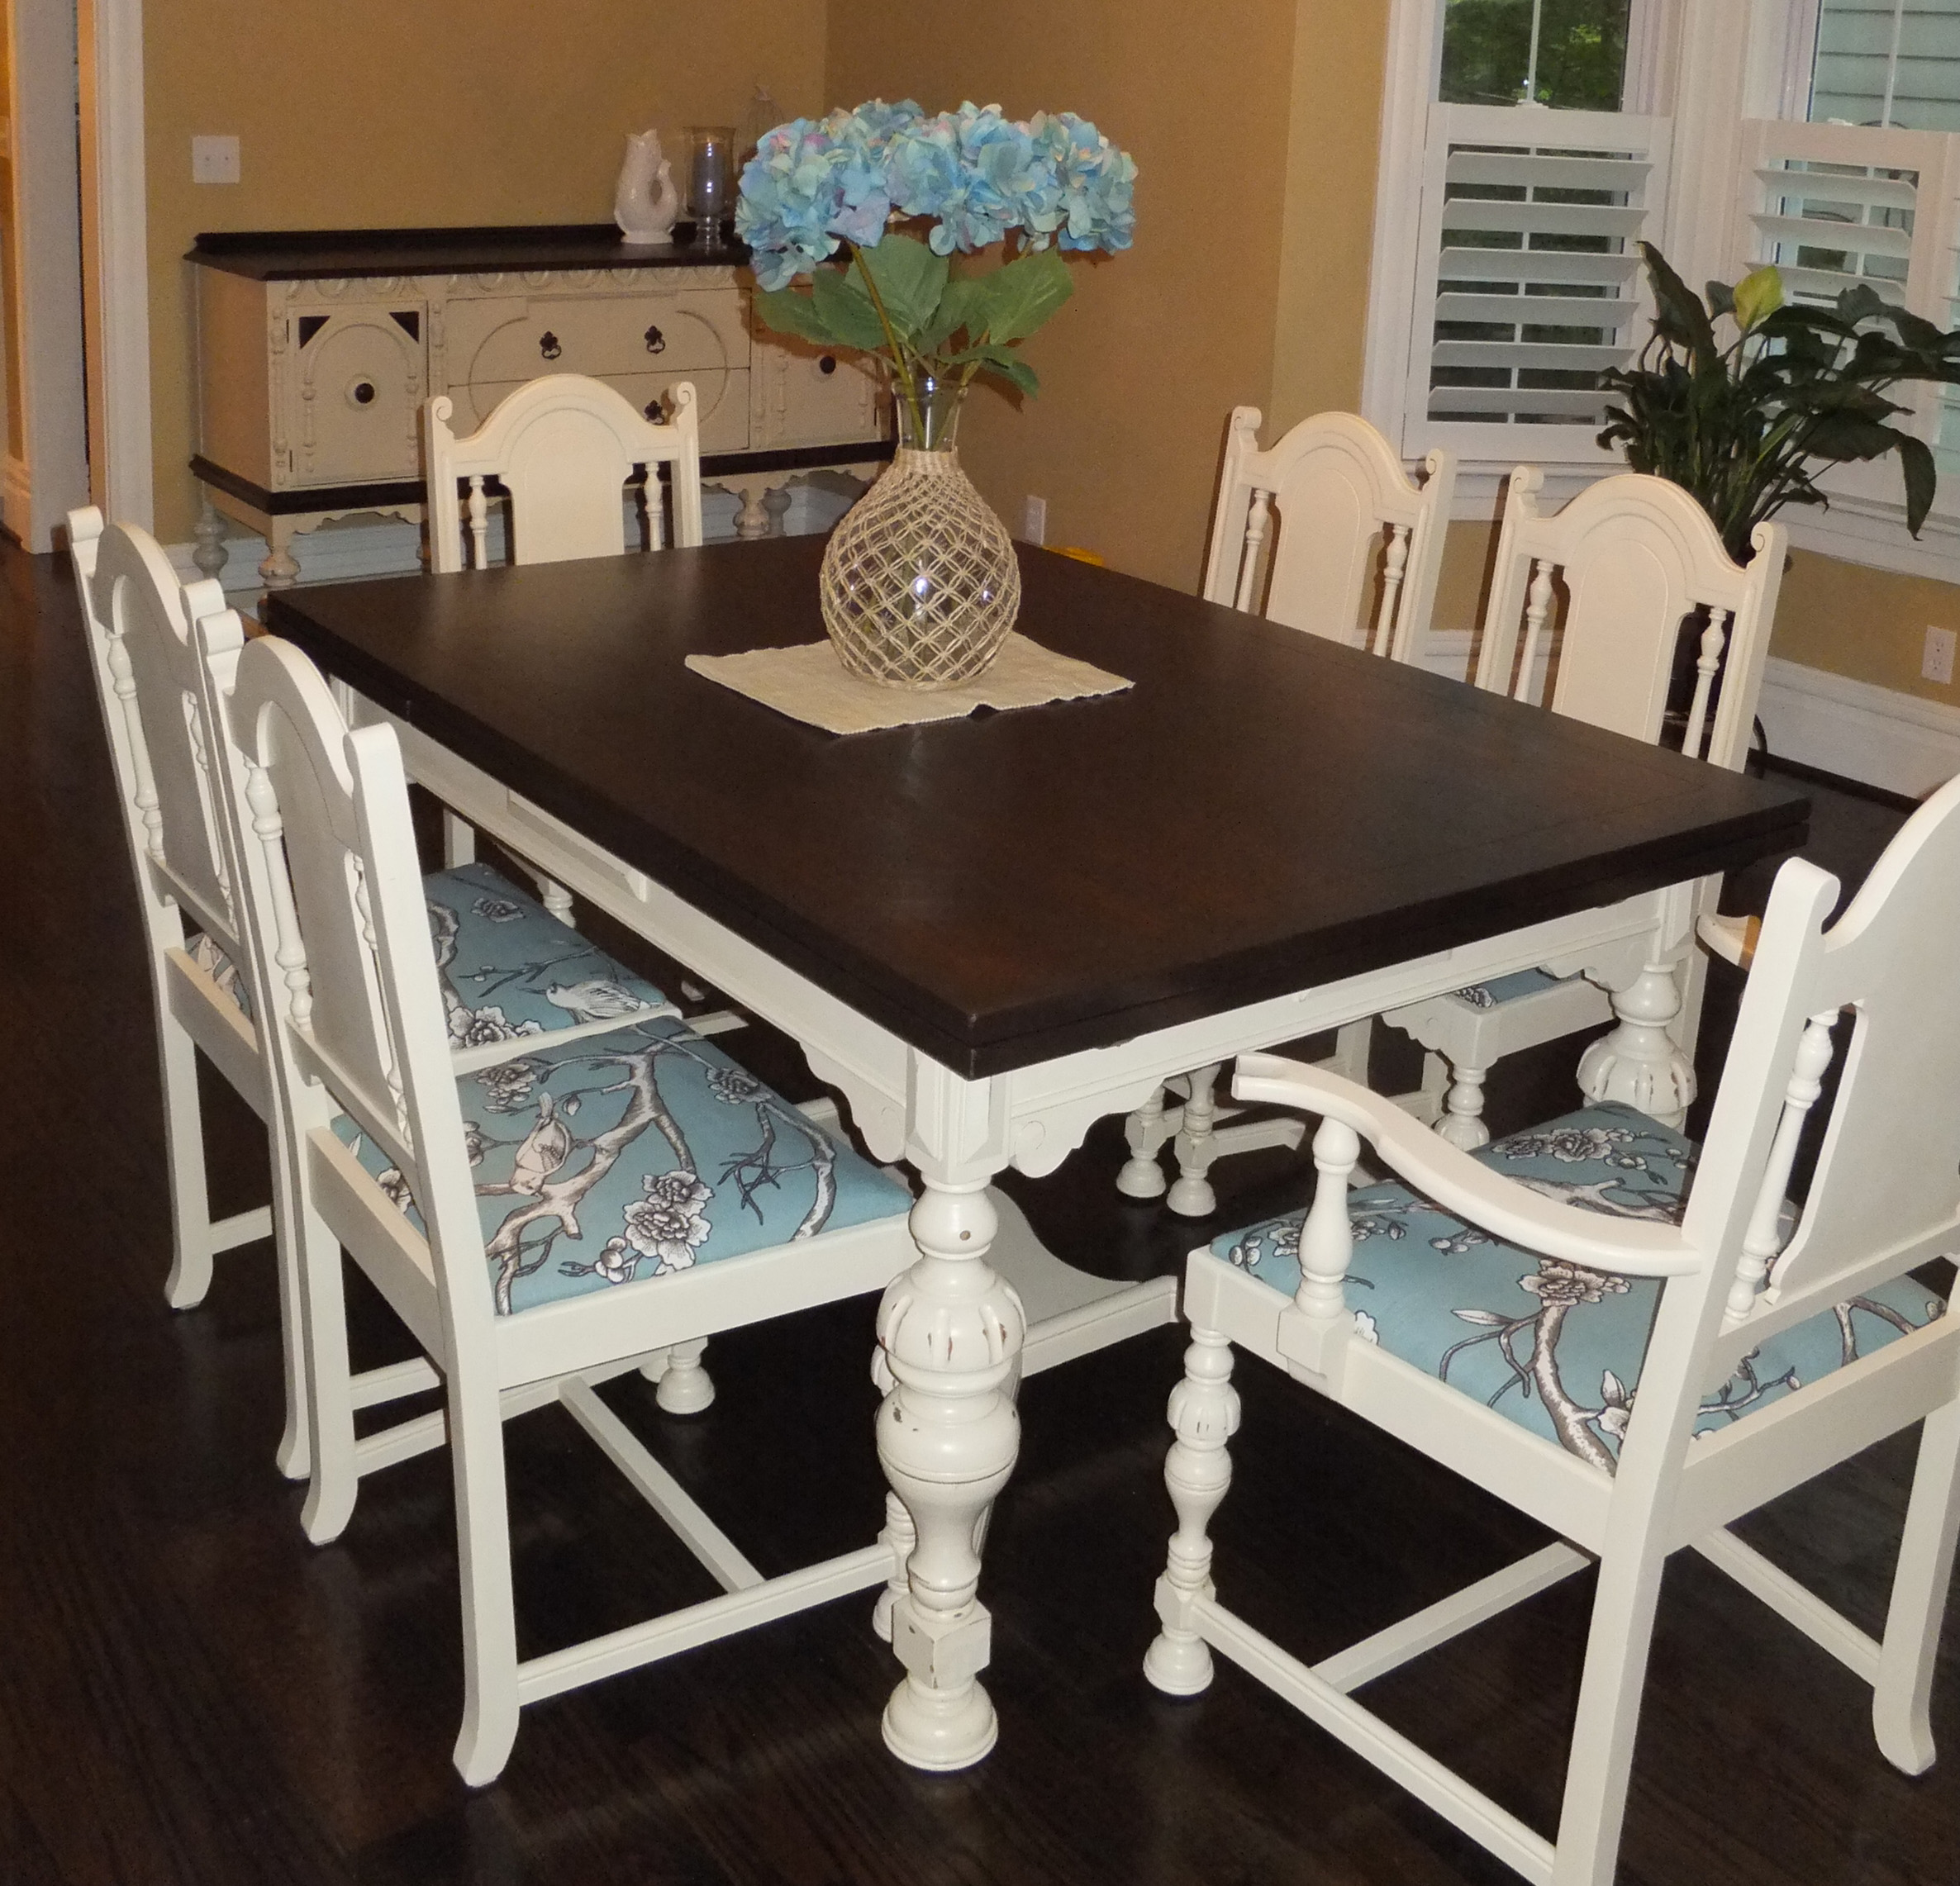 Dining Room Table and Chair Set in Java Gel Stain and  : scd general finishes milk paint linen gel stains java glaze van dyke brown dining table chairs rescued furnishings 1 20140730 from designs.generalfinishes.com size 2372 x 2283 jpeg 1103kB